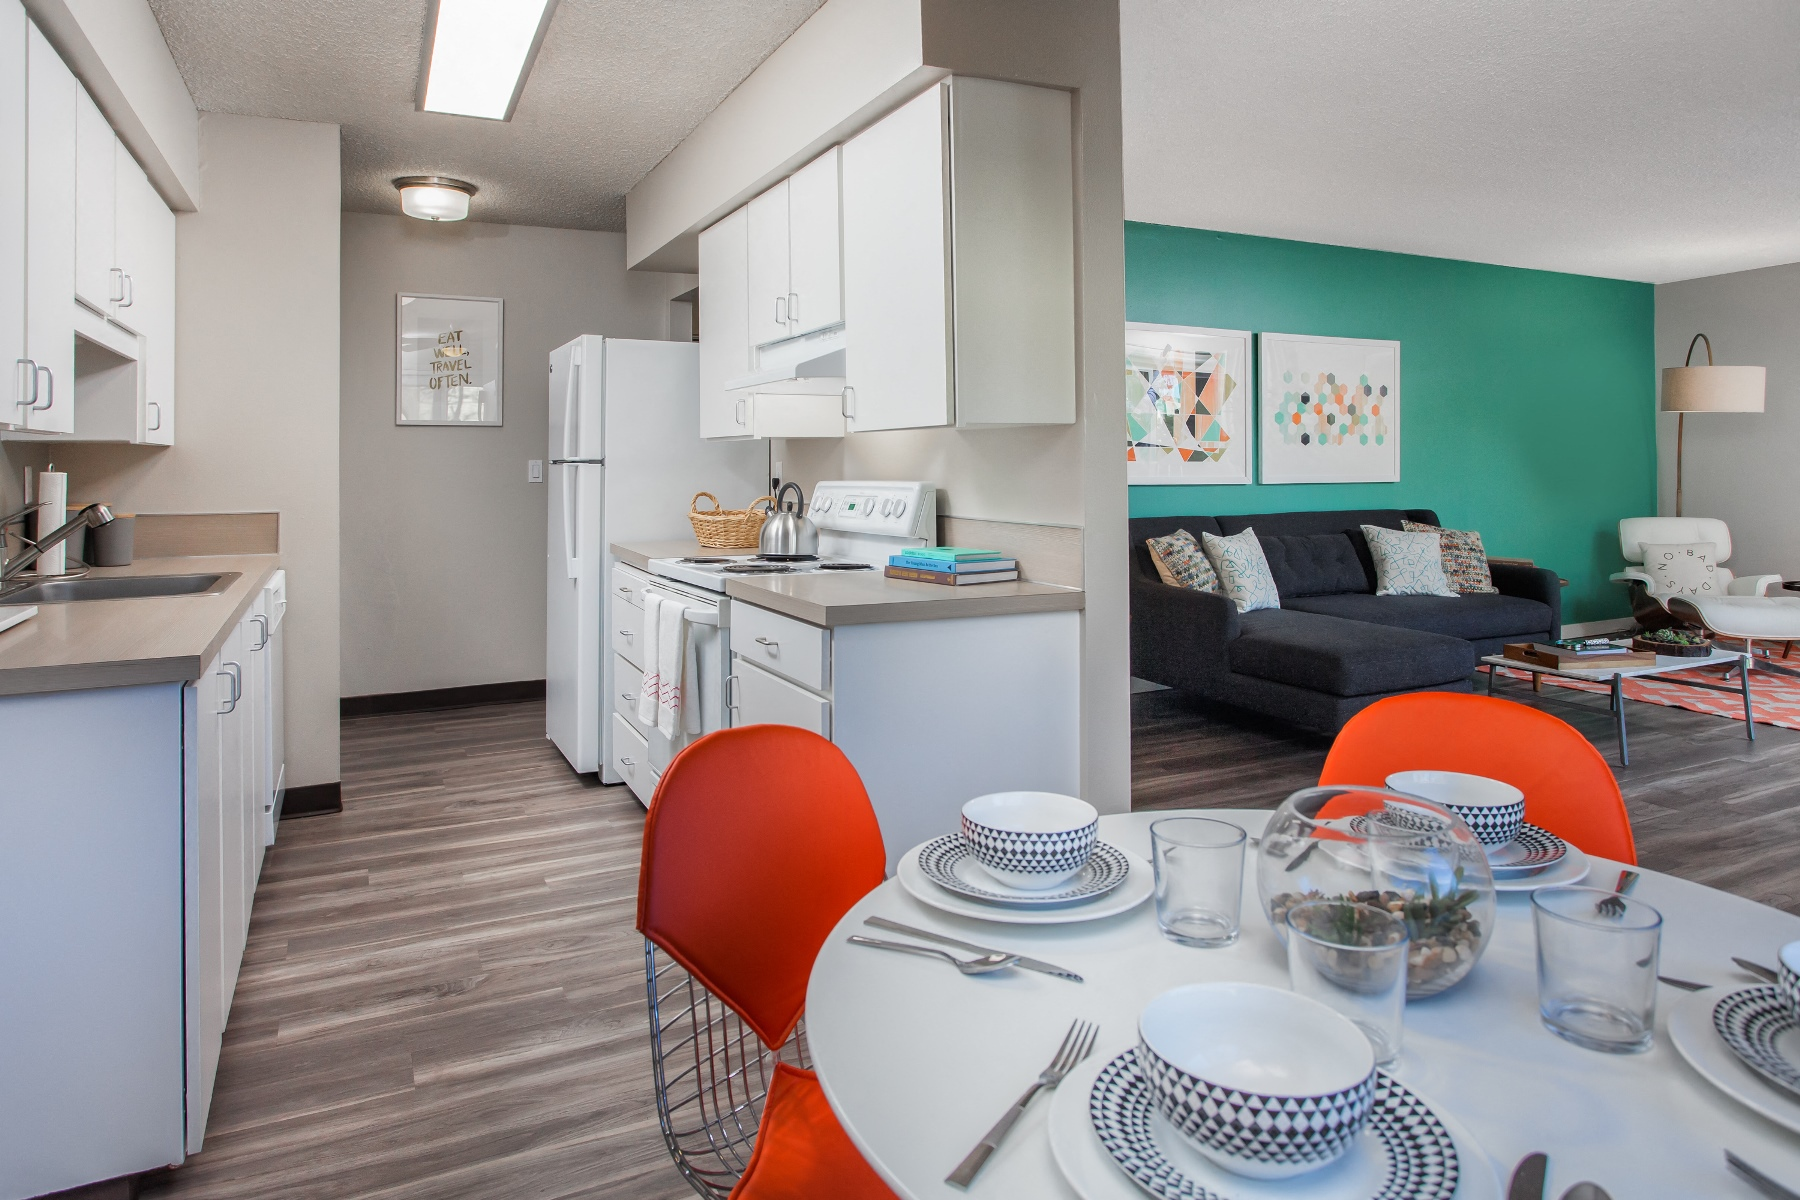 White Appliances and Cabinetry at Garden Park, Portland